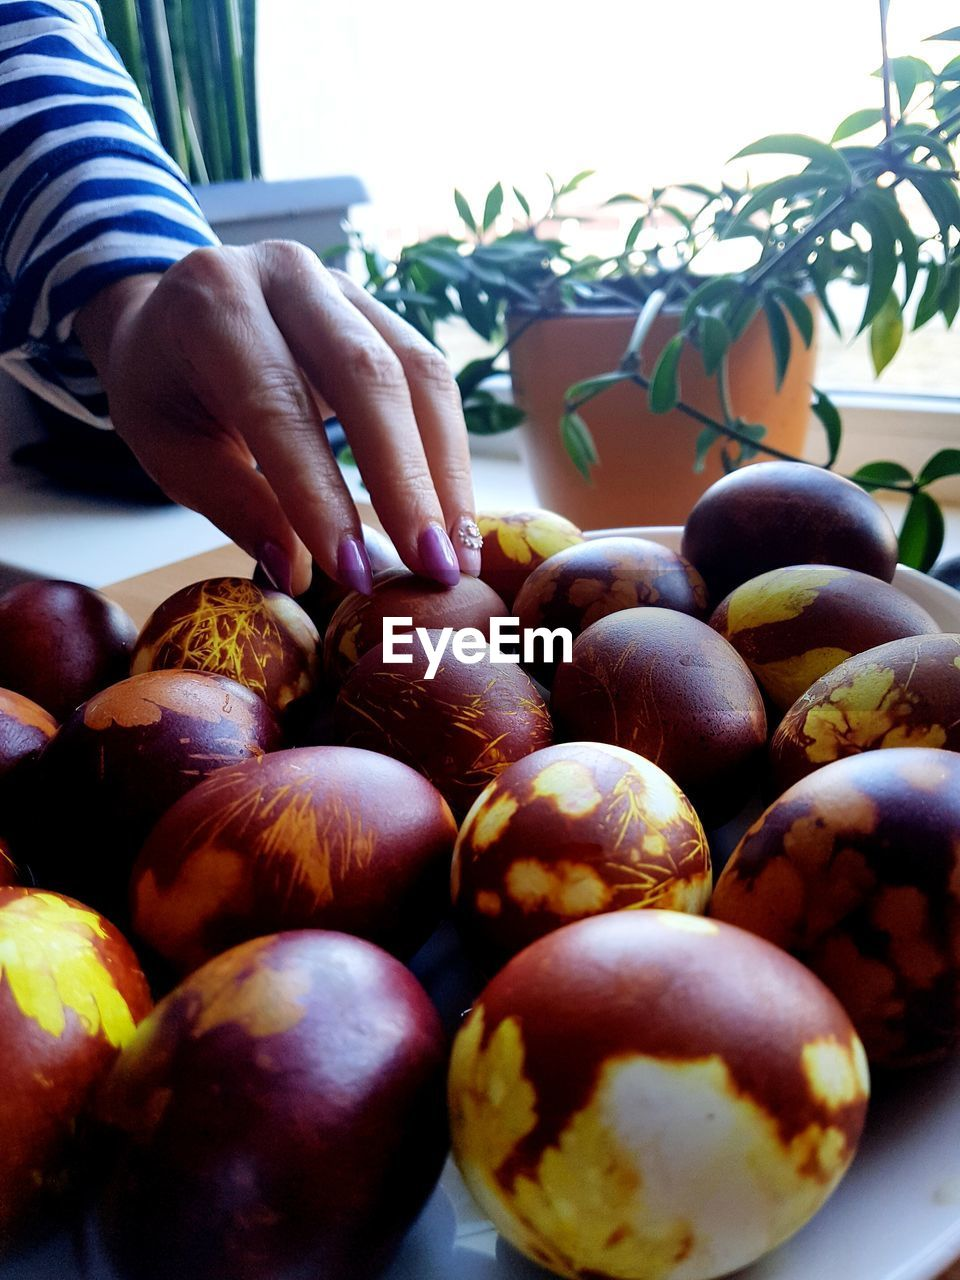 food, food and drink, freshness, hand, human hand, one person, real people, healthy eating, wellbeing, fruit, human body part, holding, day, large group of objects, unrecognizable person, close-up, men, selective focus, lifestyles, finger